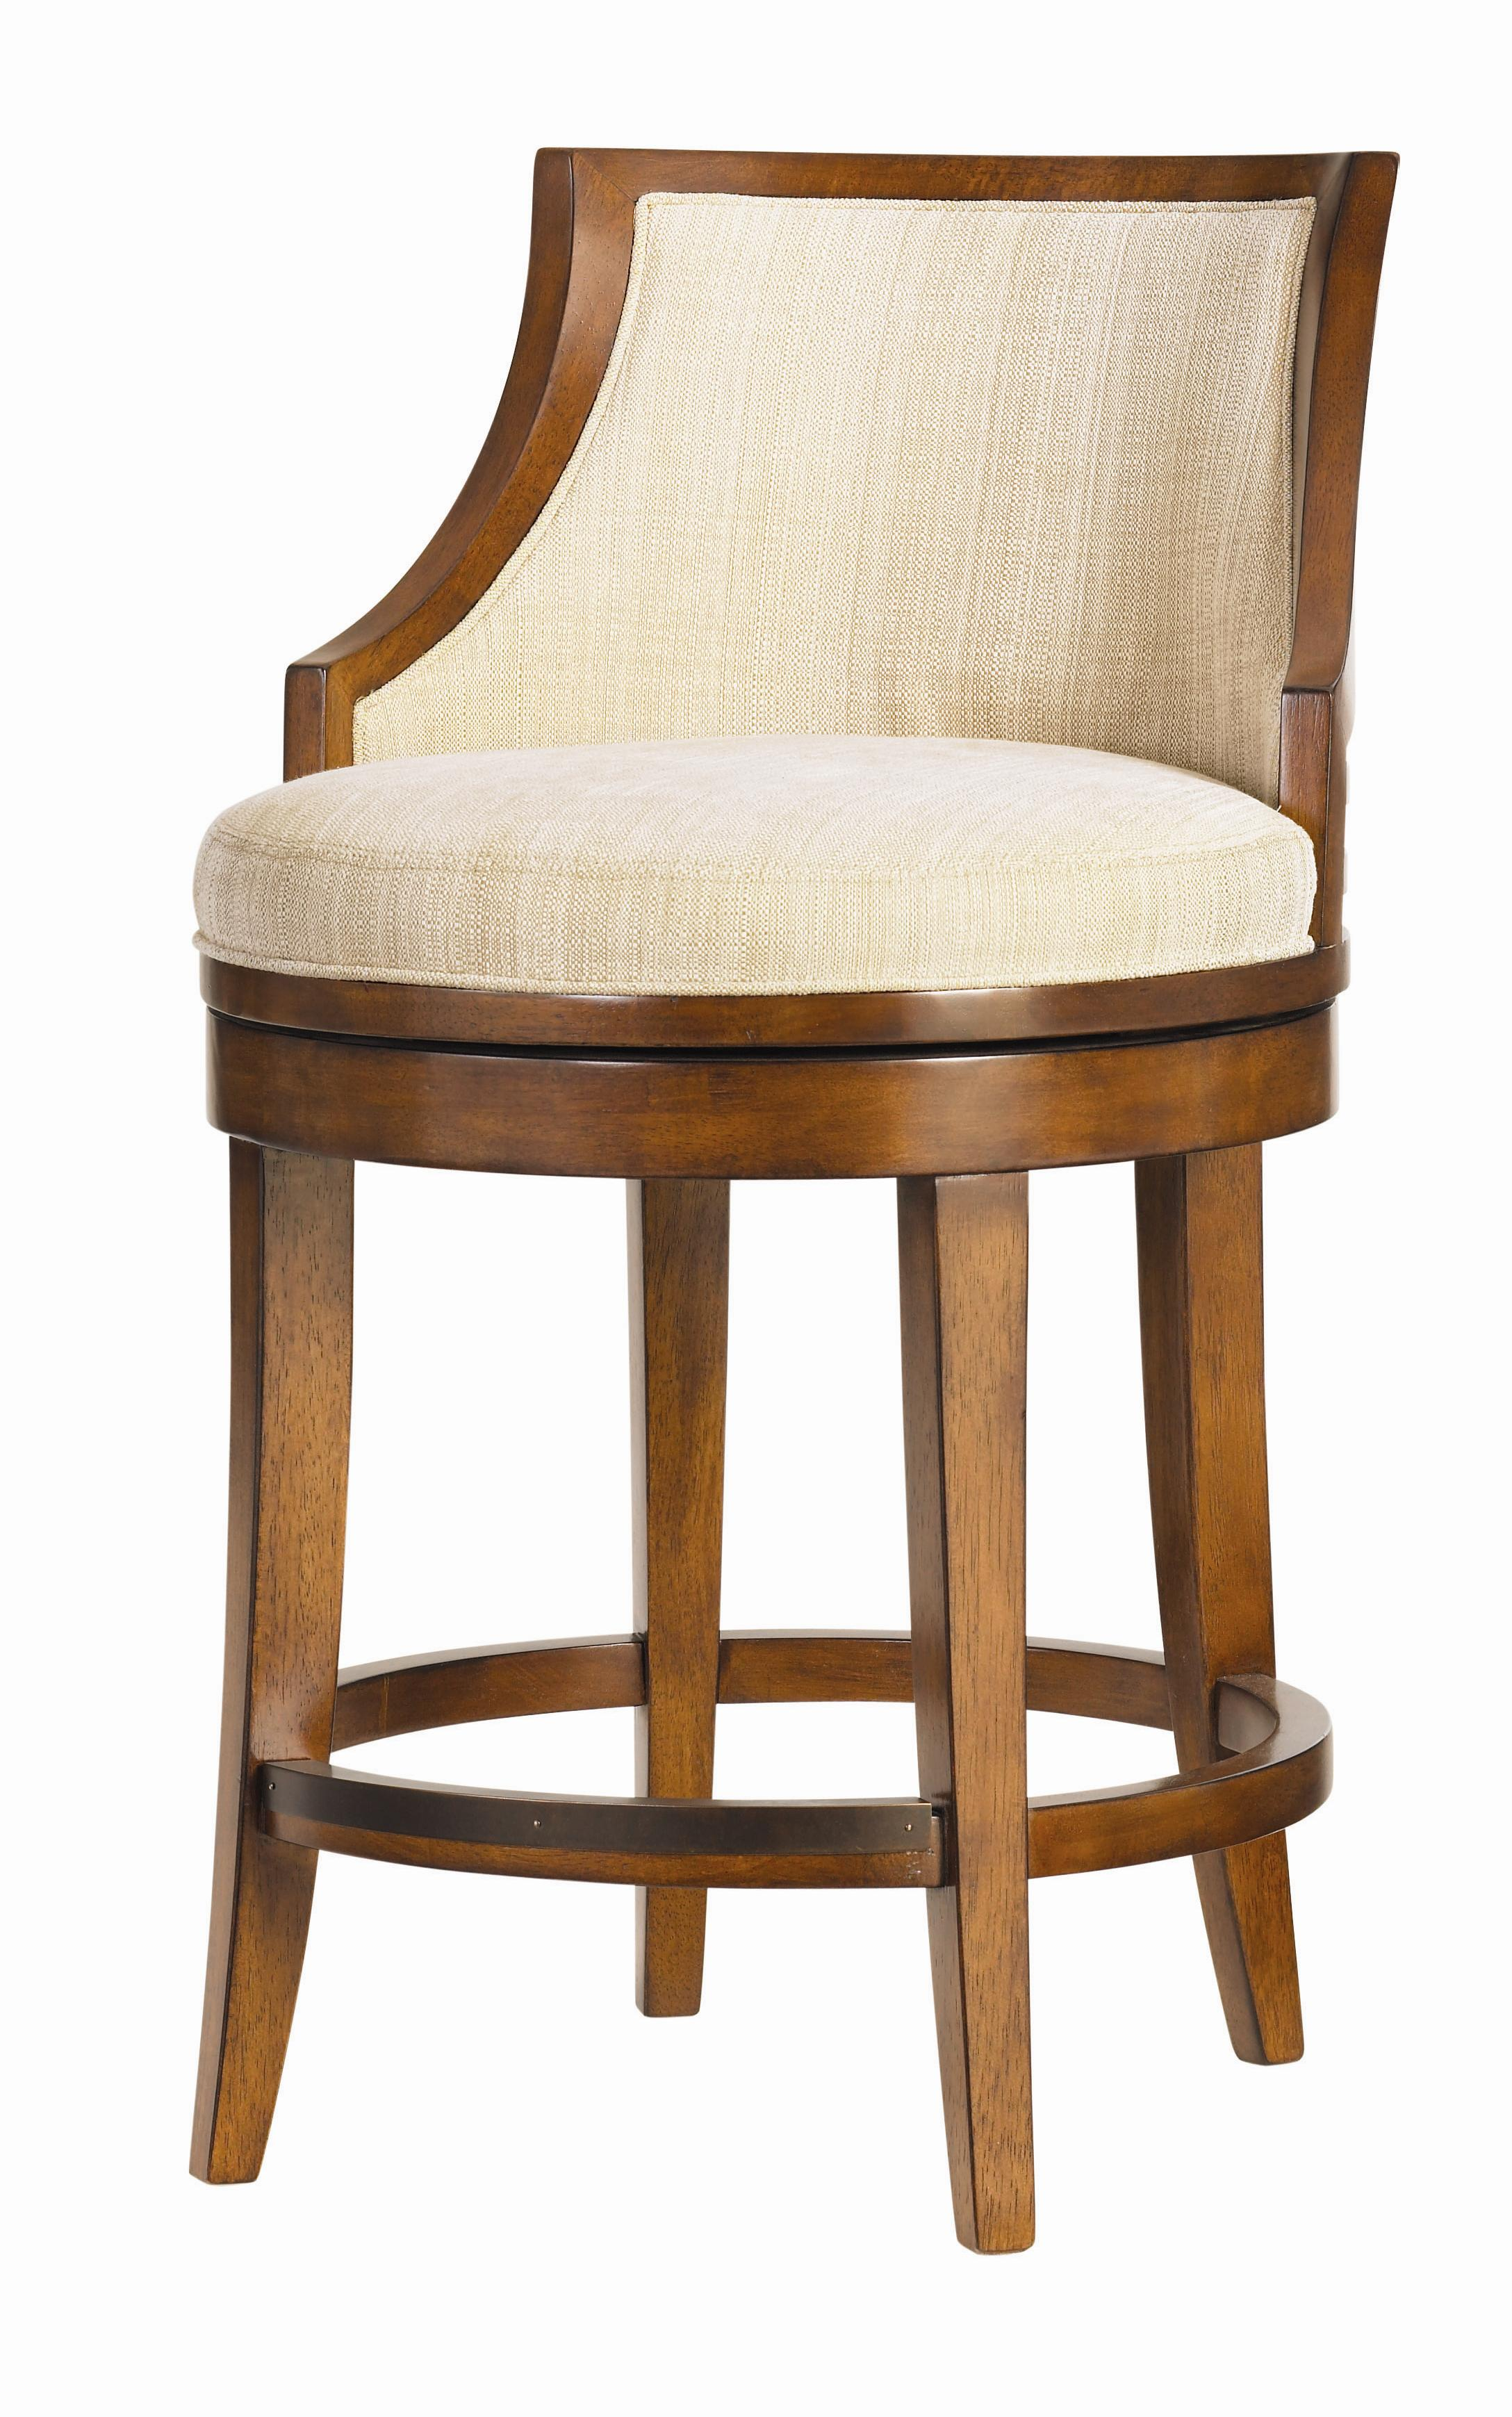 Tommy Bahama Home Ocean Club <b>Quick Ship</b> Cabana Counter Stool - Item Number: 536-815-01